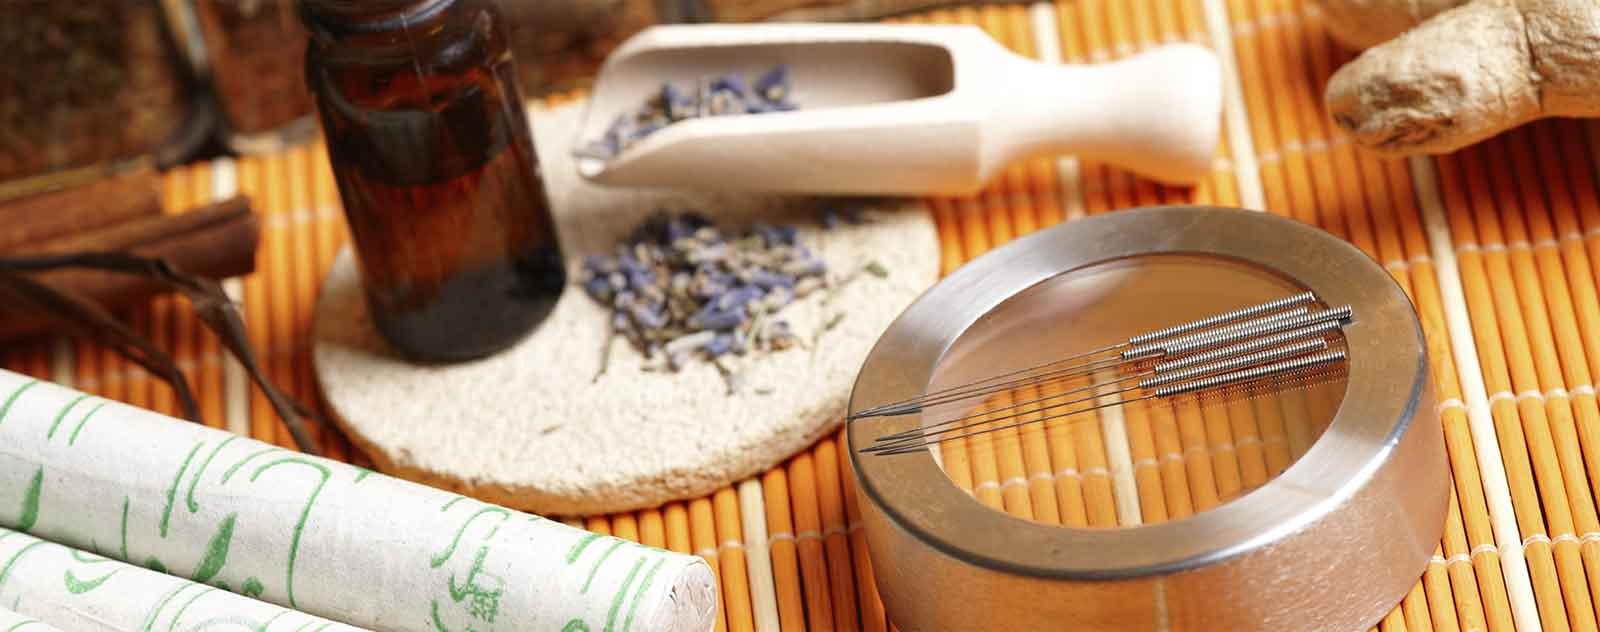 Acupuncture & Chinese Medicine clinic- Turning Point Acupuncture